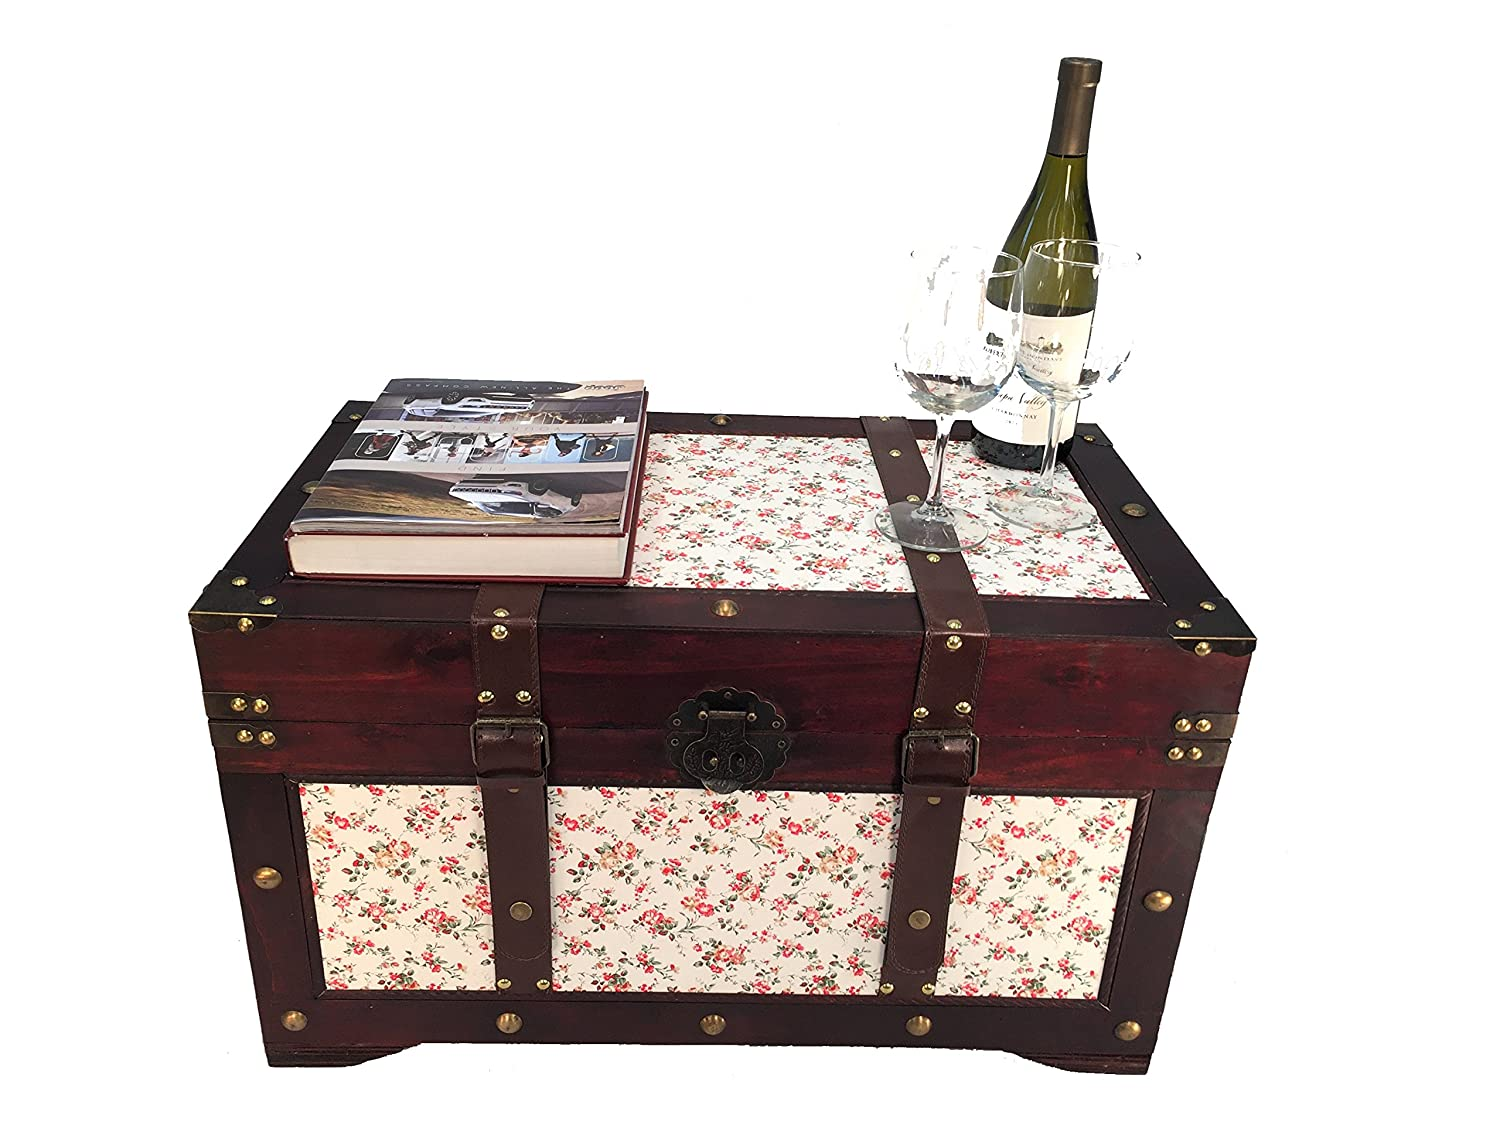 Savannah Chest Wooden Steamer Trunk - Large Size China